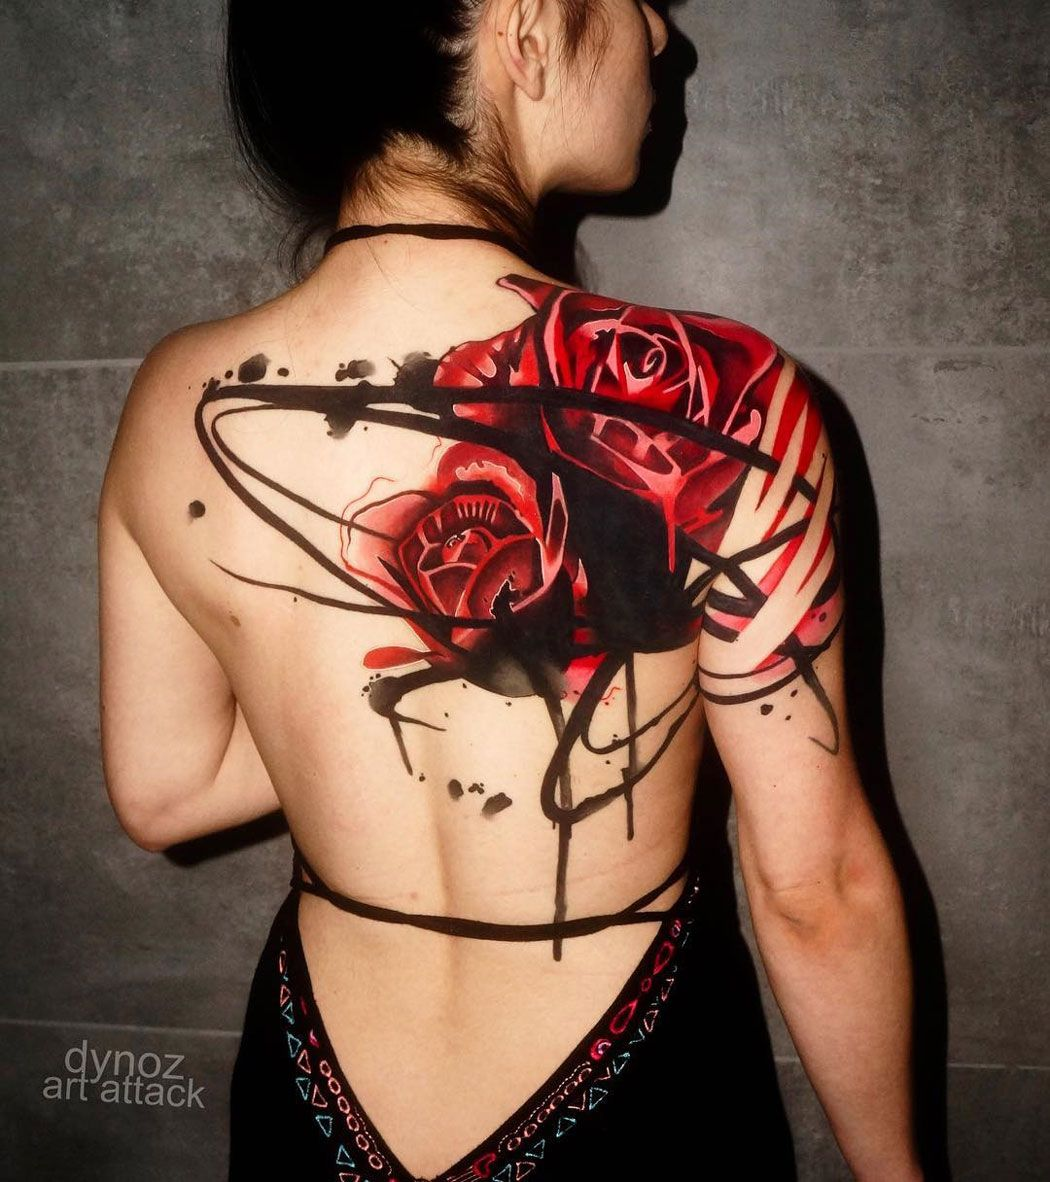 50 Best Tattoo Ideas For Women Looking For Good Tats In 2020 Tattoos Spine Tattoos Trendy Tattoos